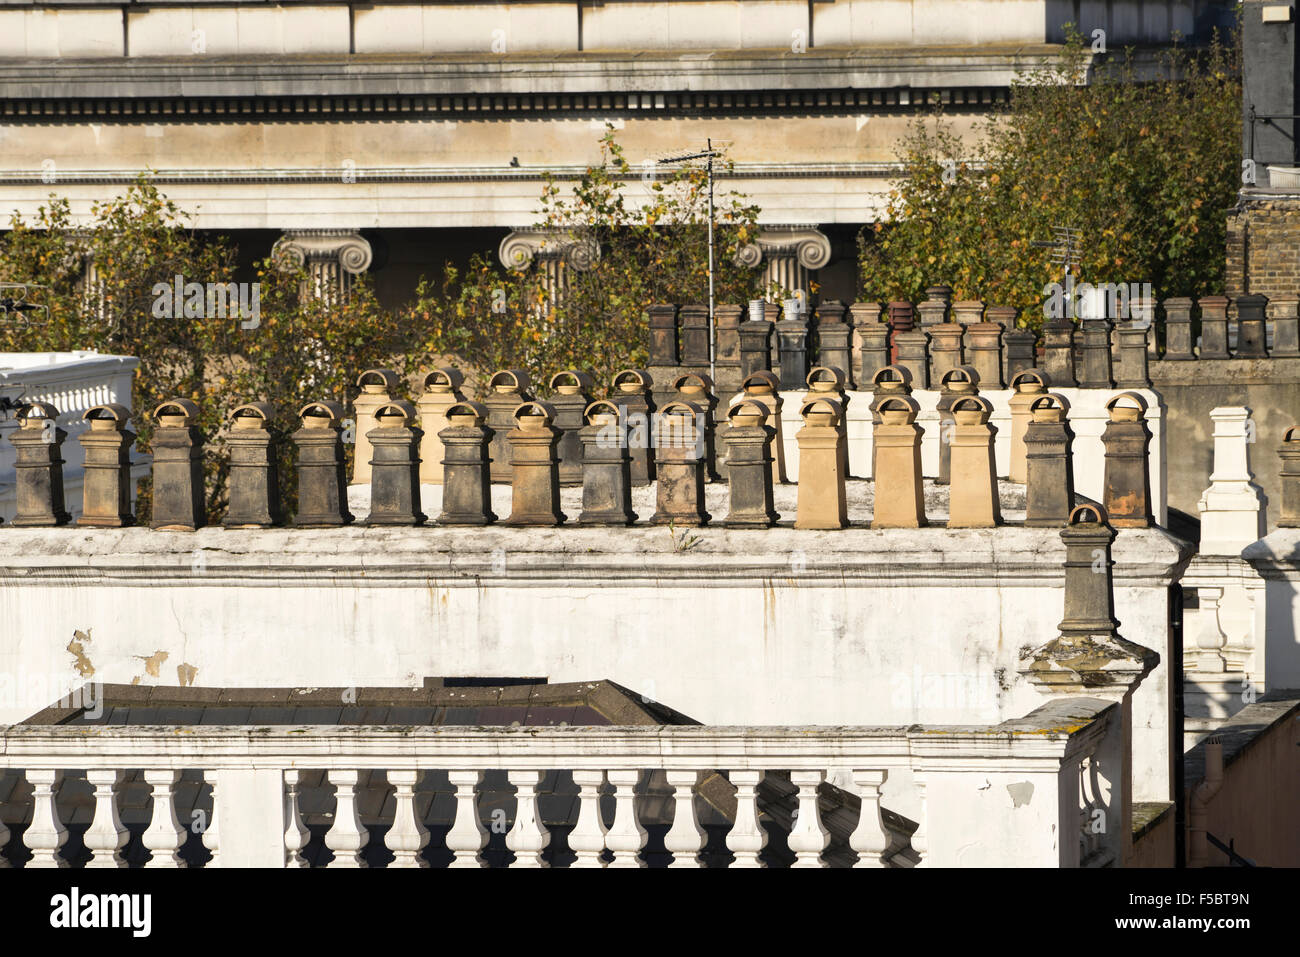 Chimneys and rooftops of Bloomsbury London with columns of the British Museum in the bacground - Stock Image